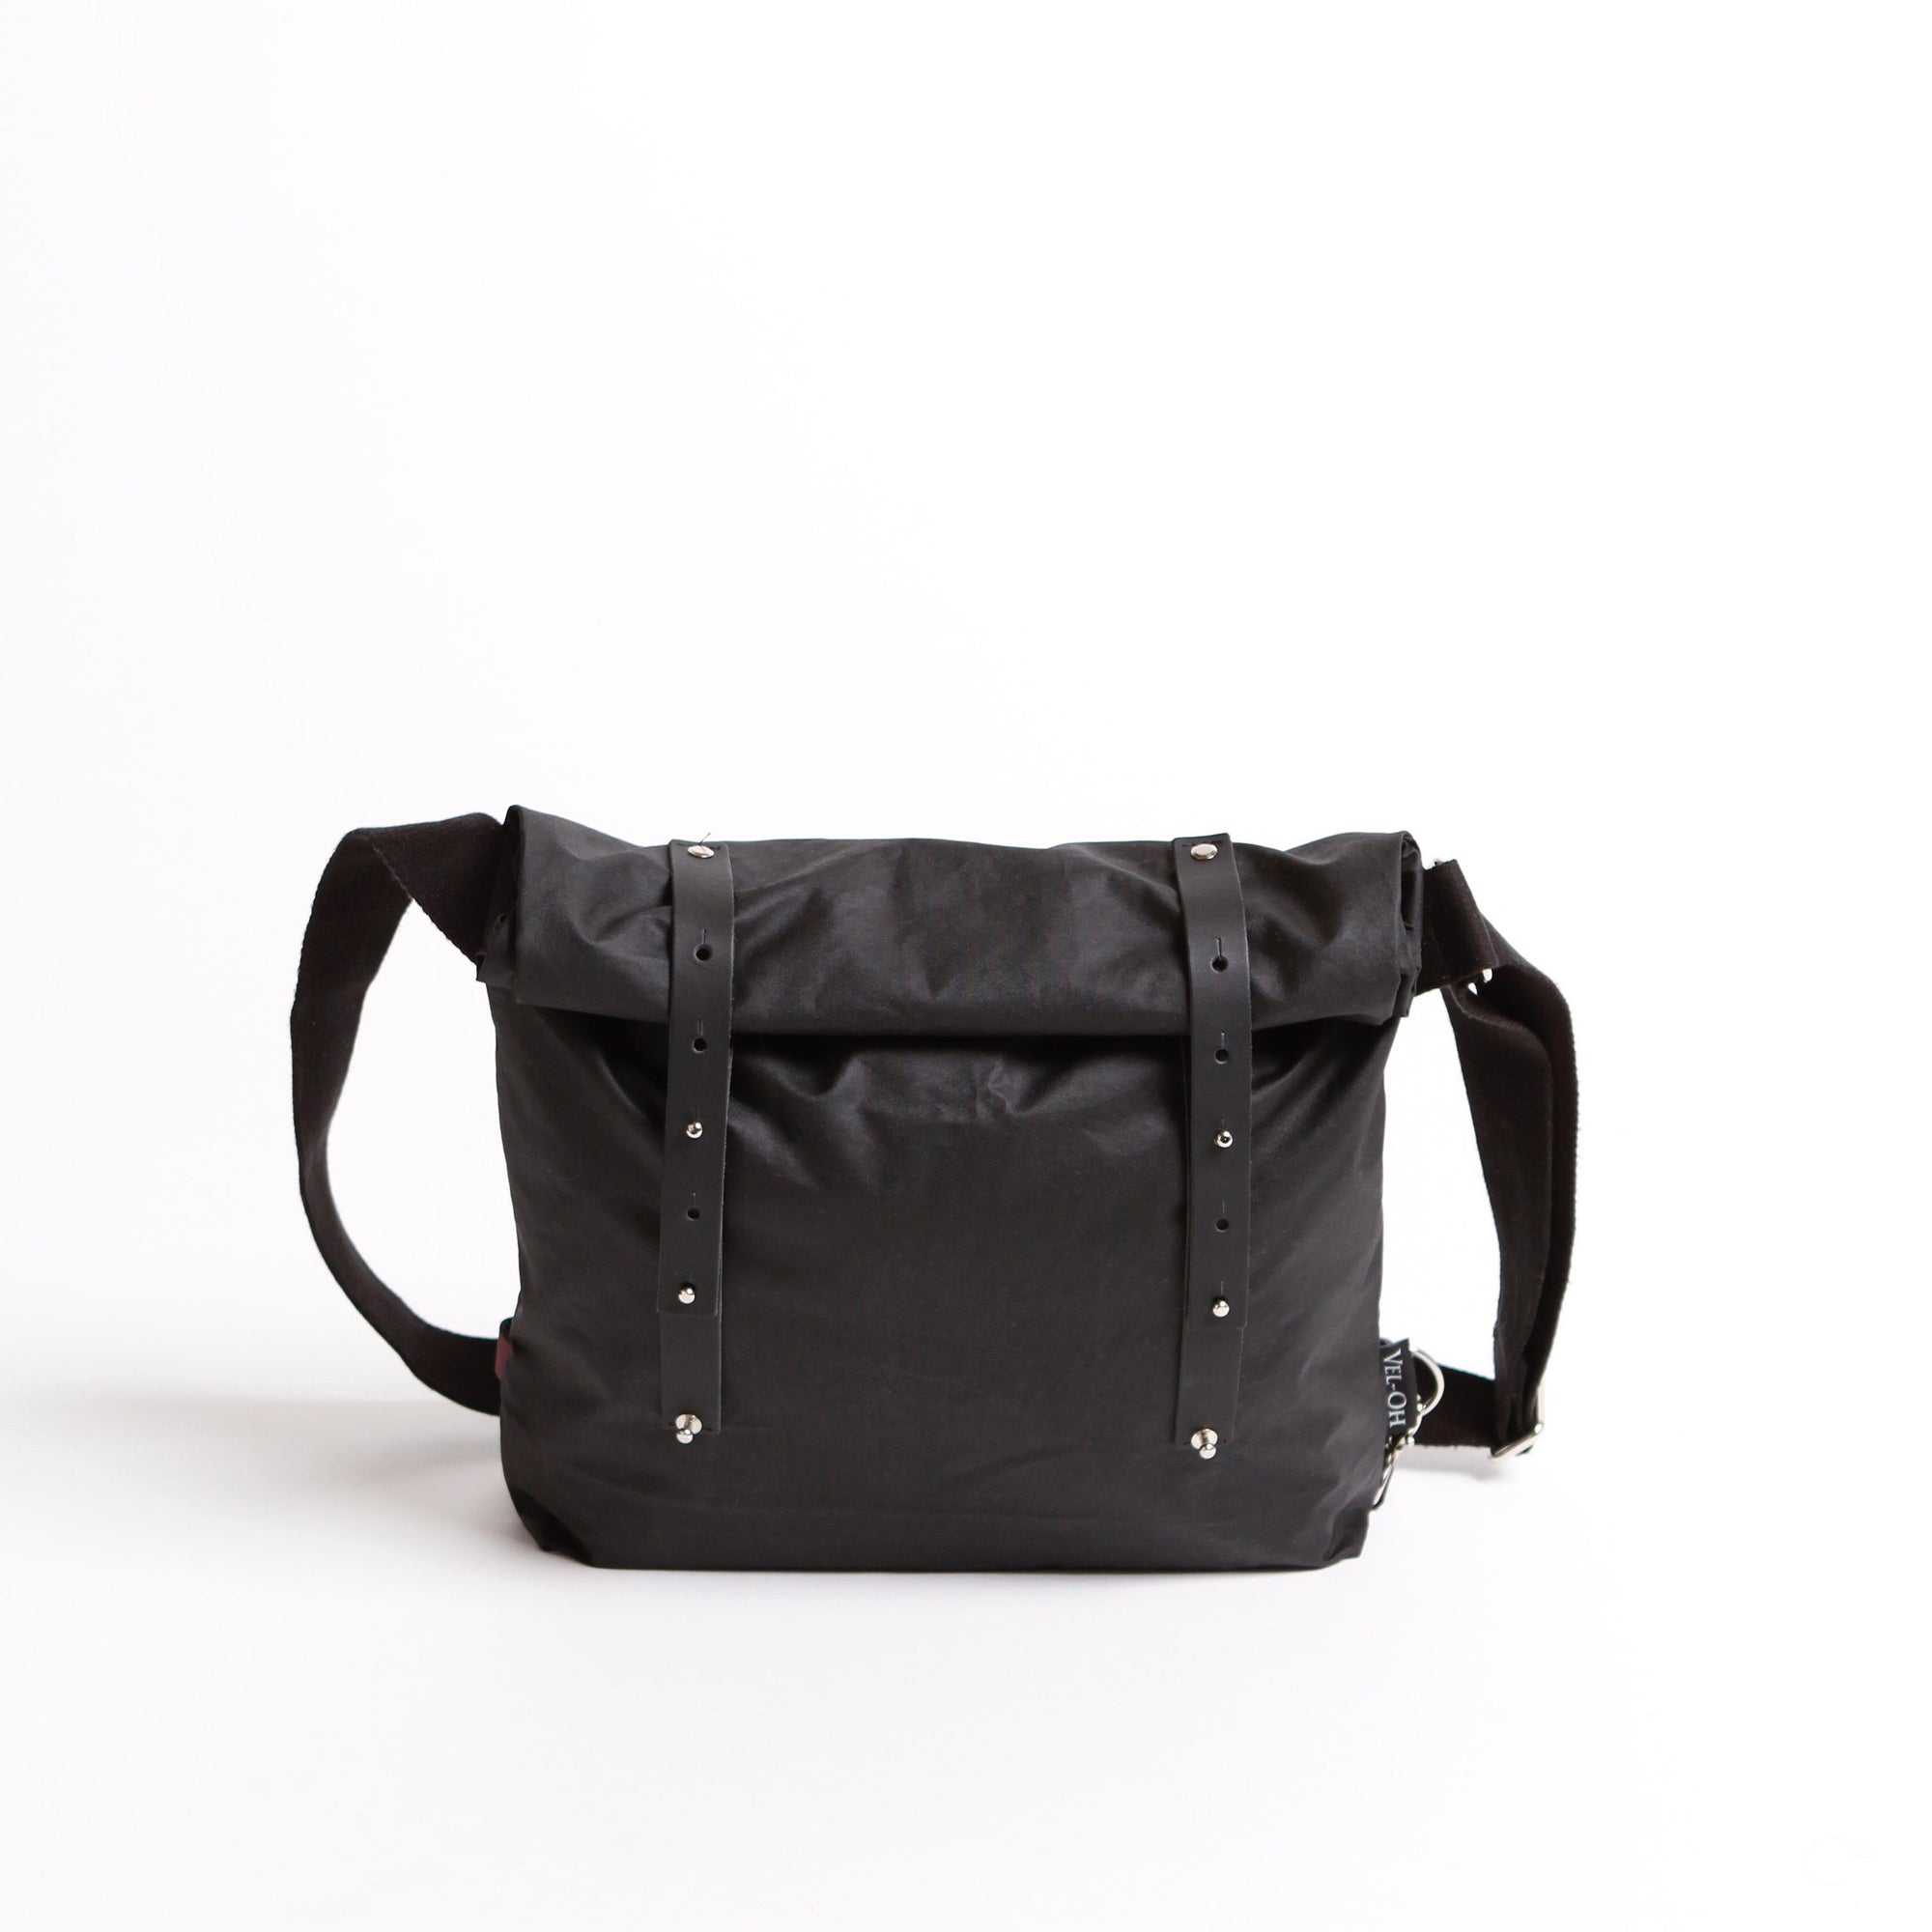 Day Bag - Black | Shoulder bag, messenger bag - Vel-Oh